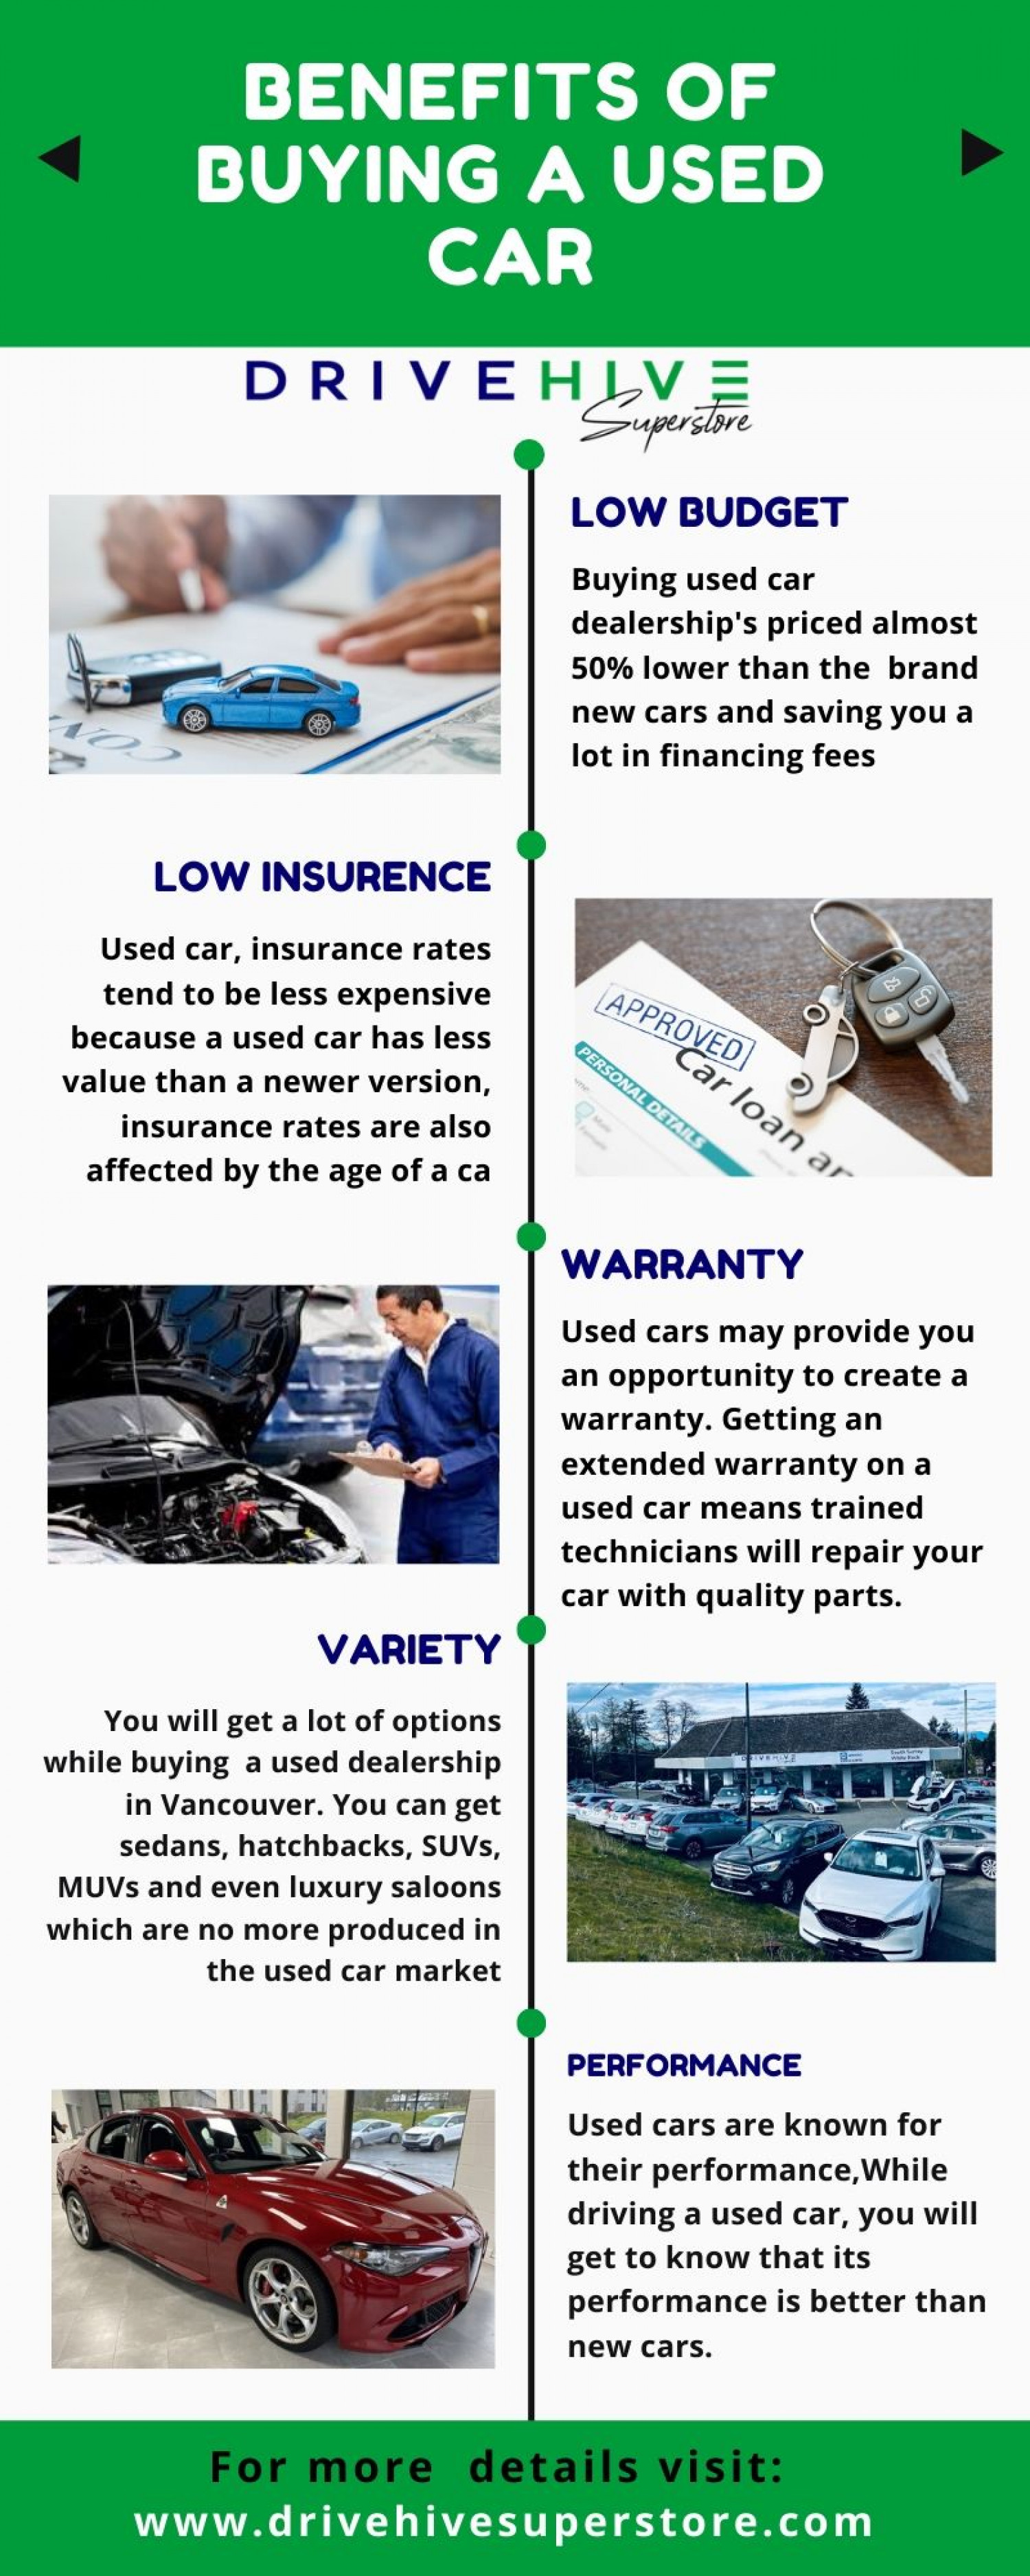 Benefits  of Buying a Used Car | DriveHive Superstore Infographic